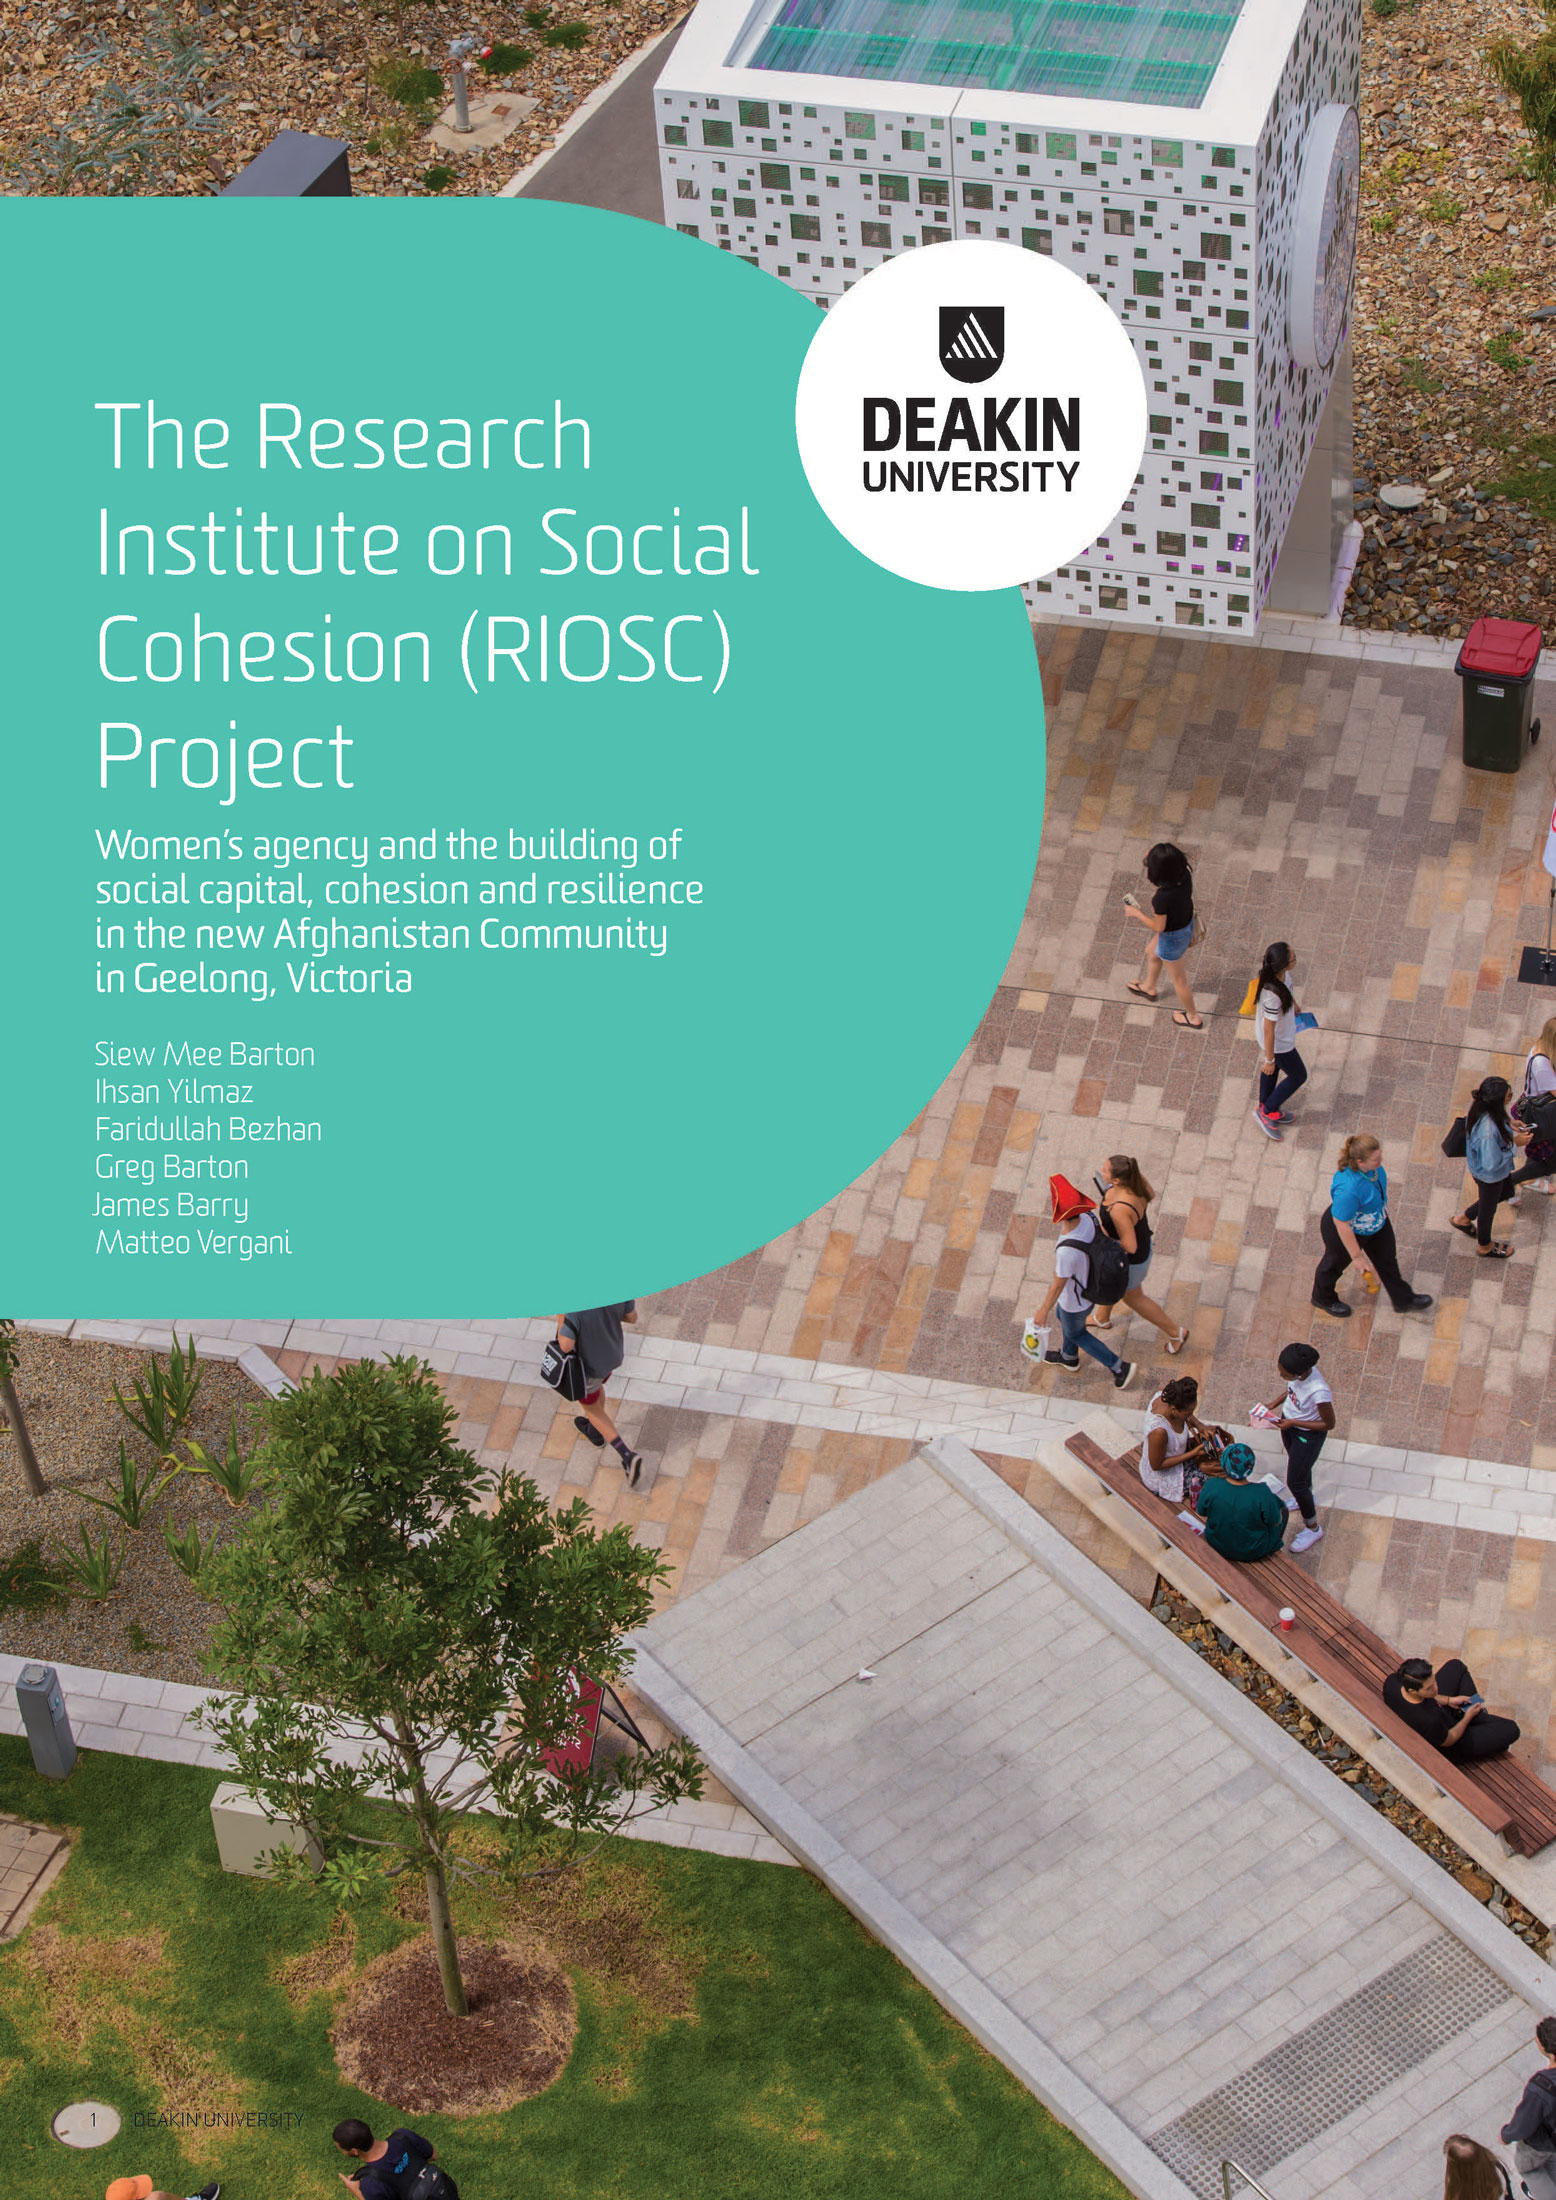 Research Reports - Many of the research projects undertaken at the Institute release publicly available reports summarising our major findings.